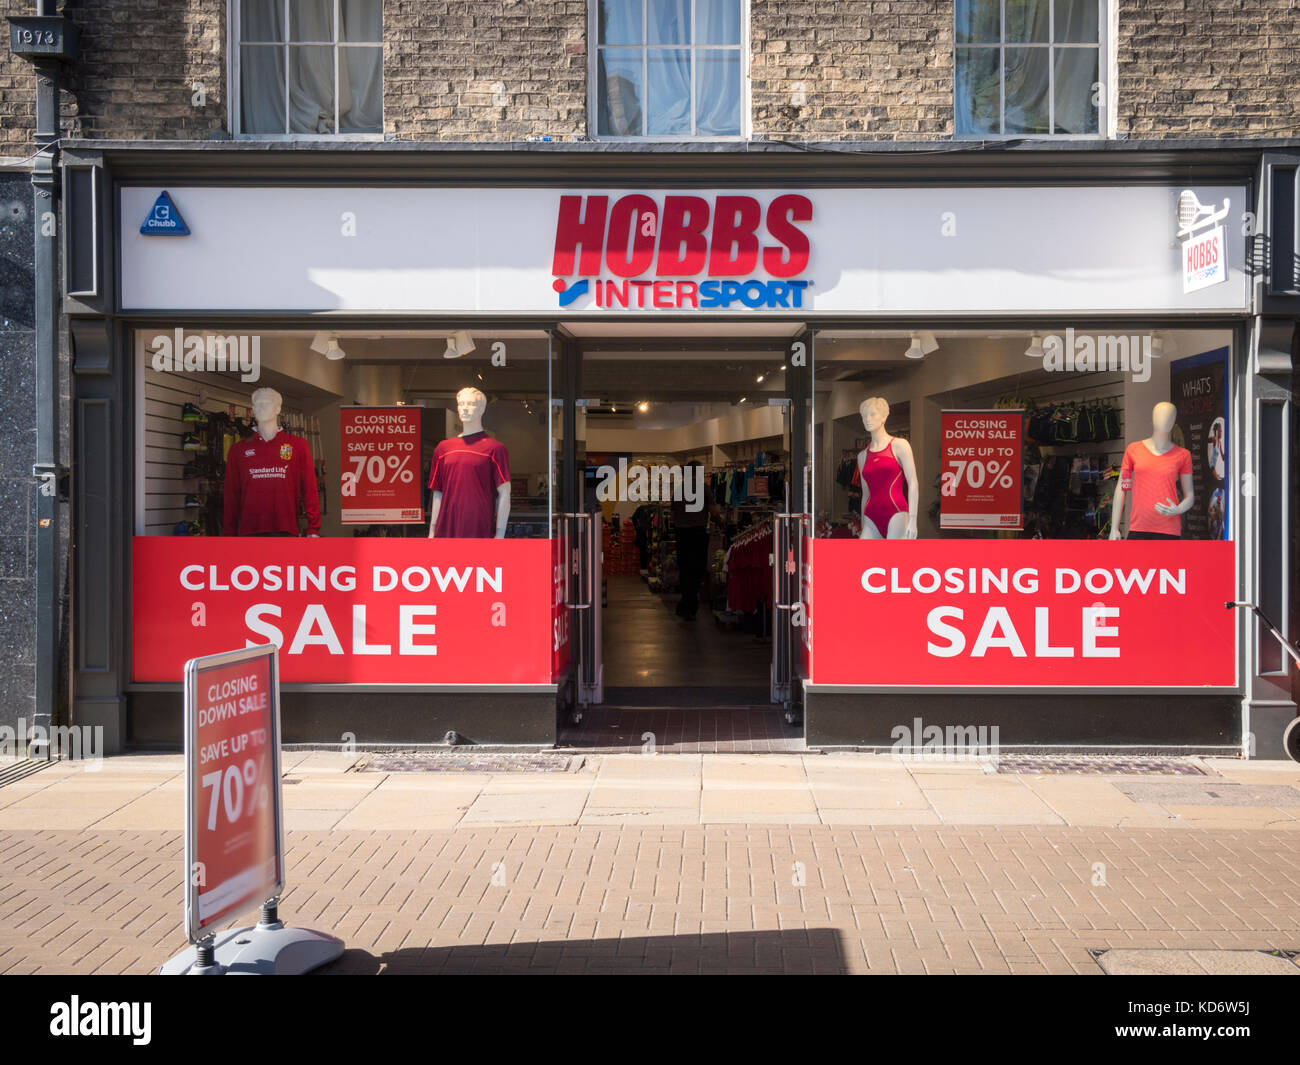 The Hobbs Sports Shop in Cambridge UK which is closing down.  The shop window has closing down sale signs in the - Stock Image